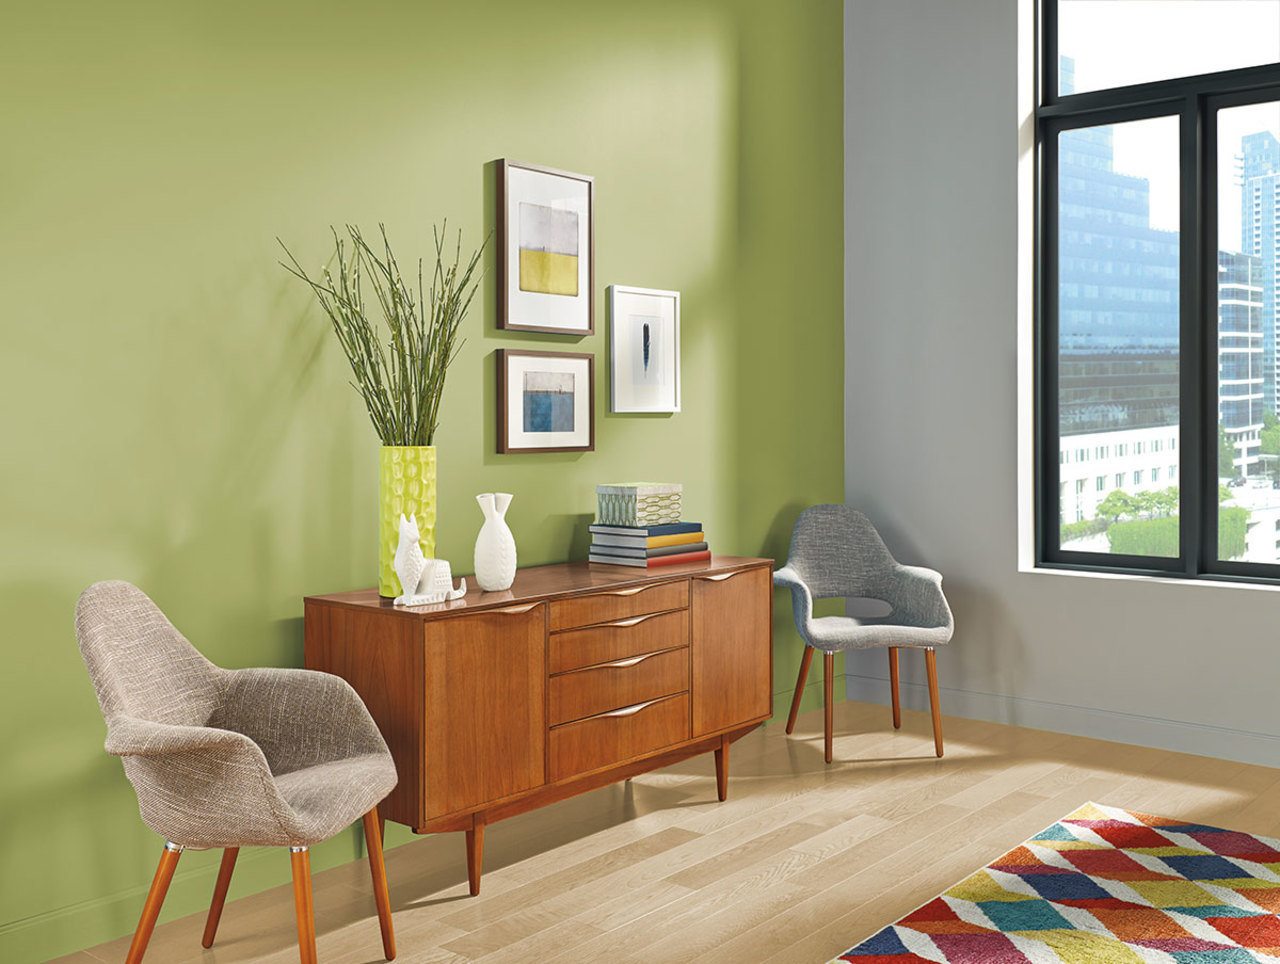 A green accent wall lends vivid detail to a dining room.